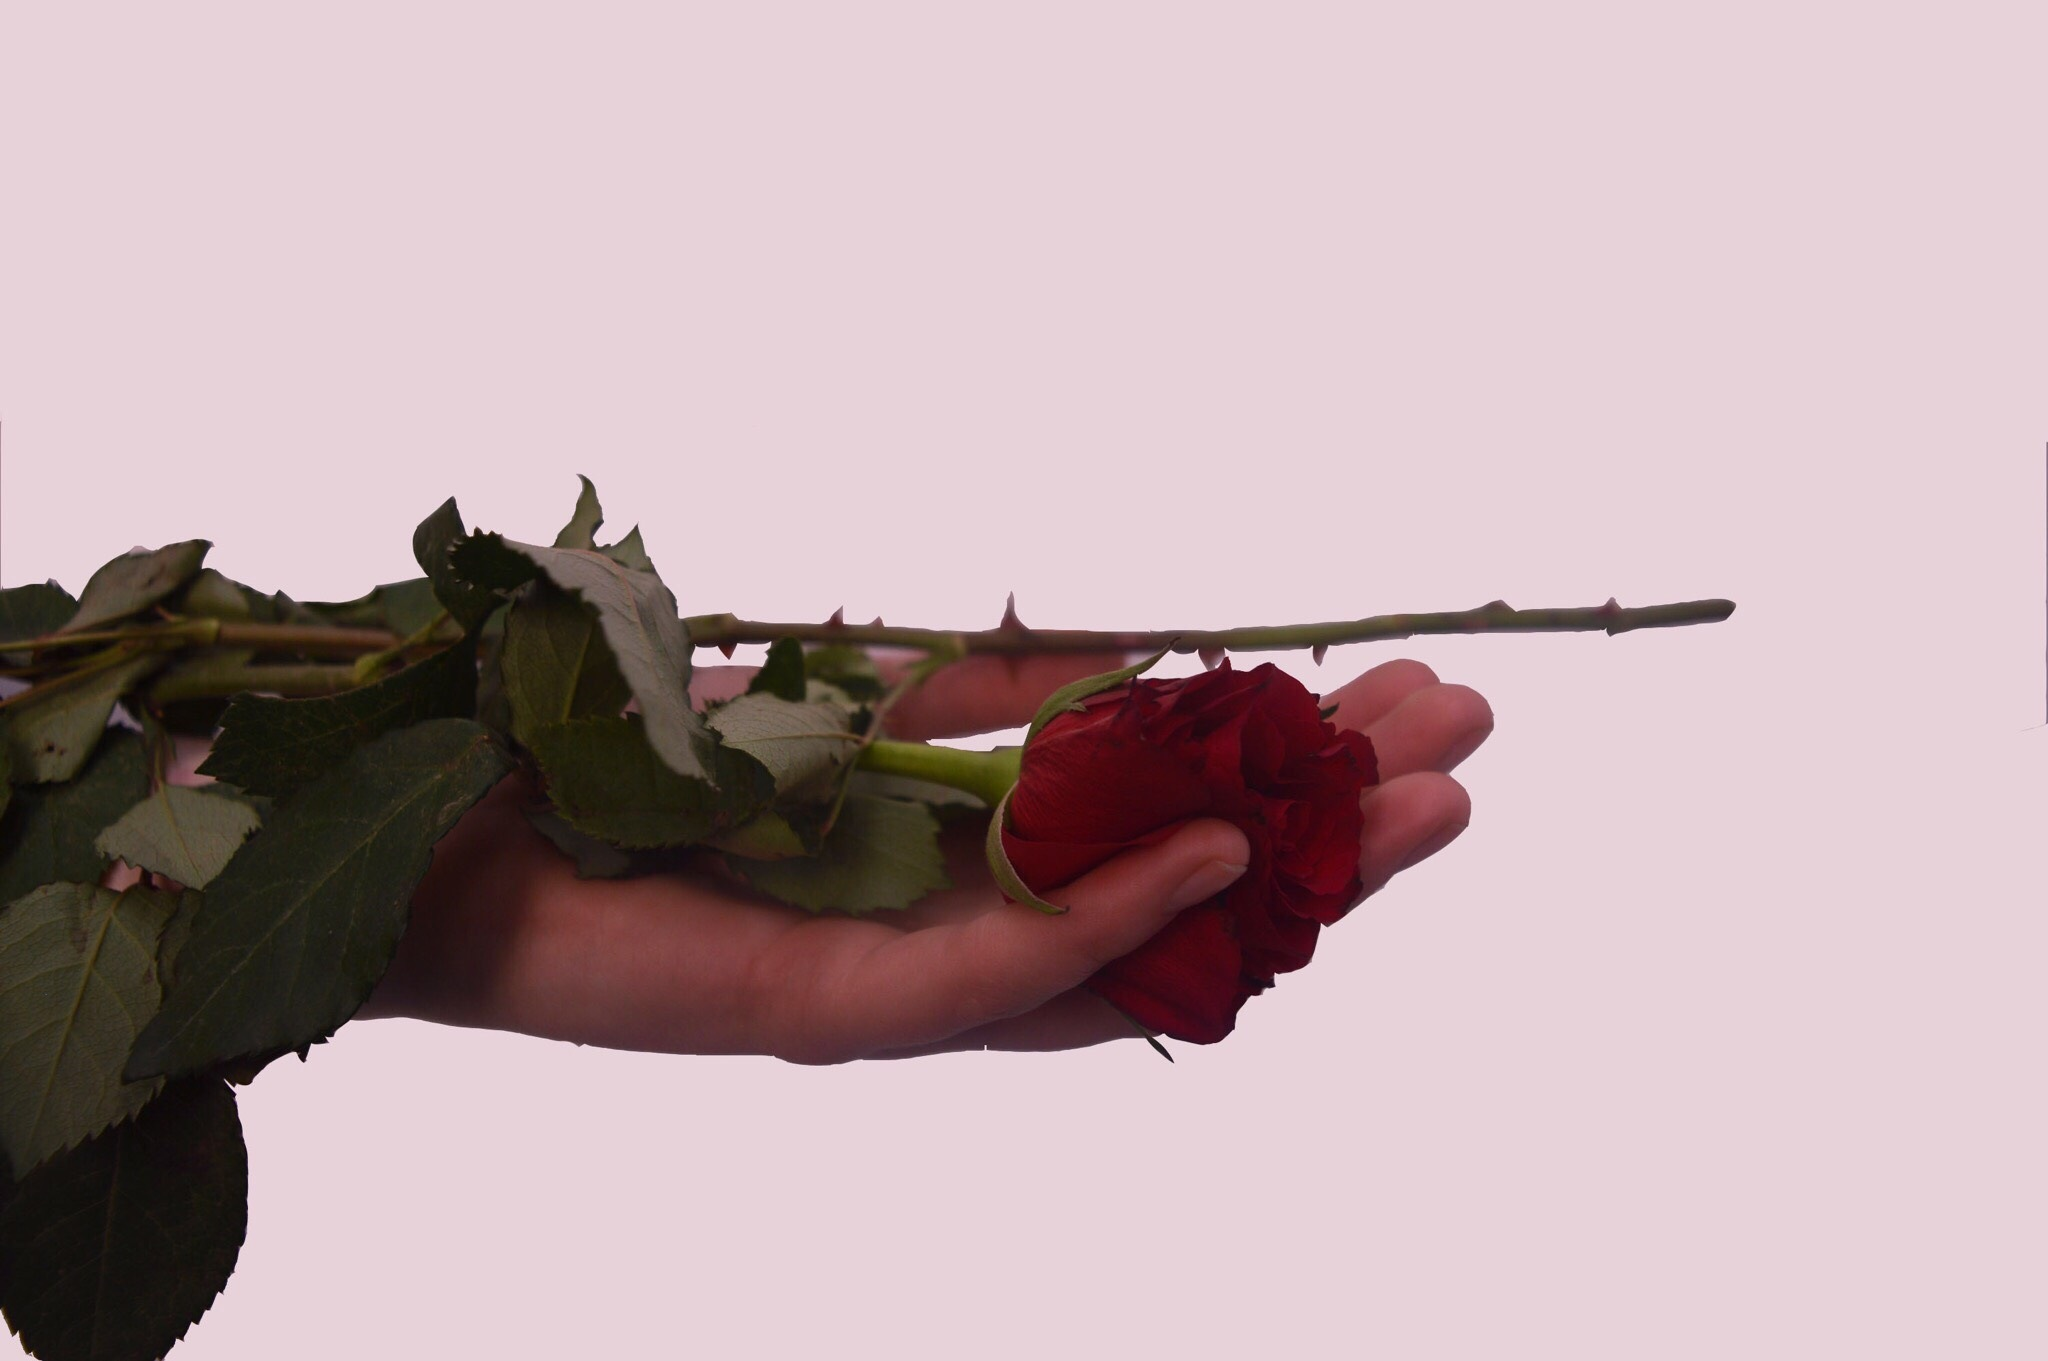 rose thorn project by laurenmason1502